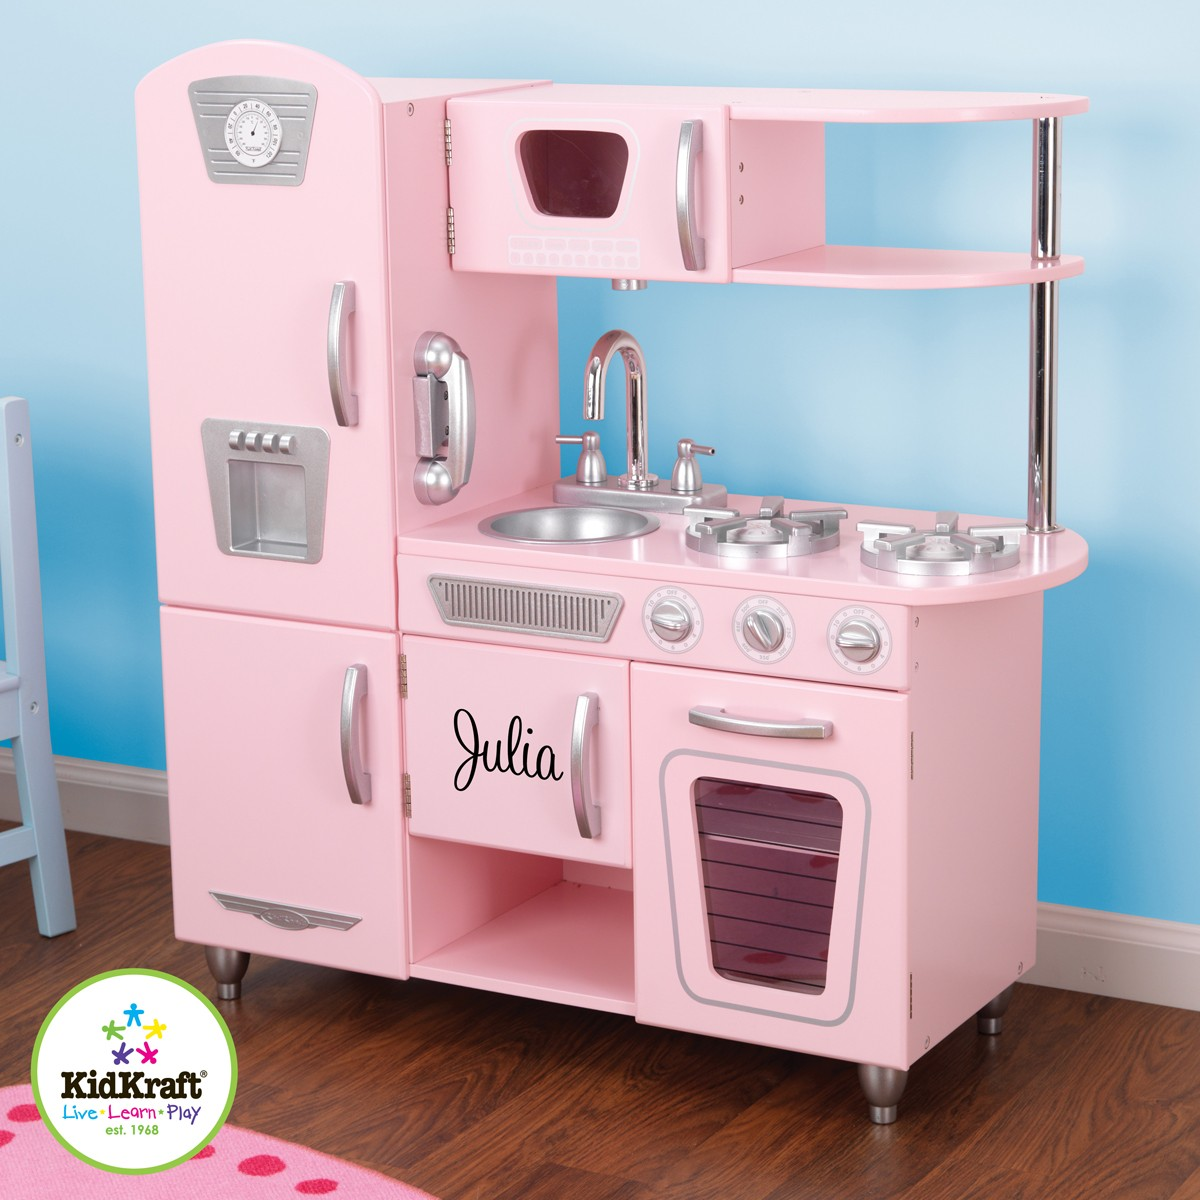 Kidkraft Wooden Play Kitchen wooden kids kitchen